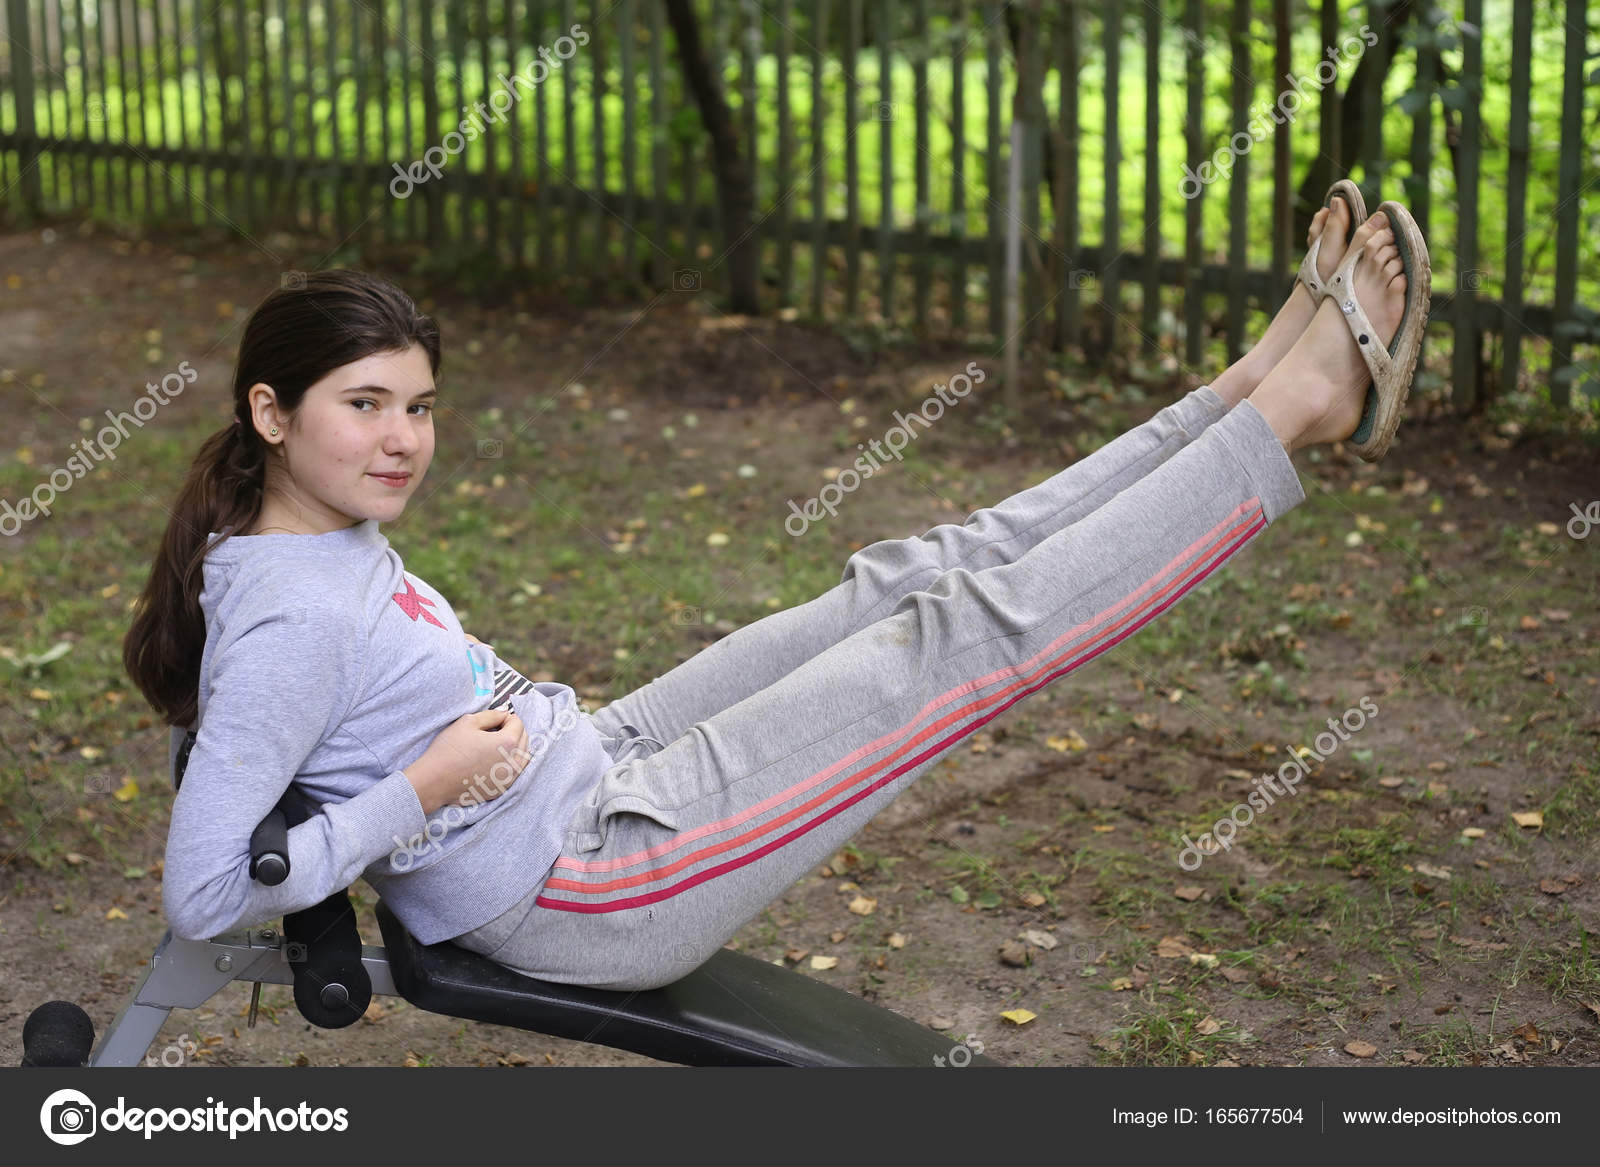 teenager girl work out abs on outdoor trainer close up summer photo photo by ulianna